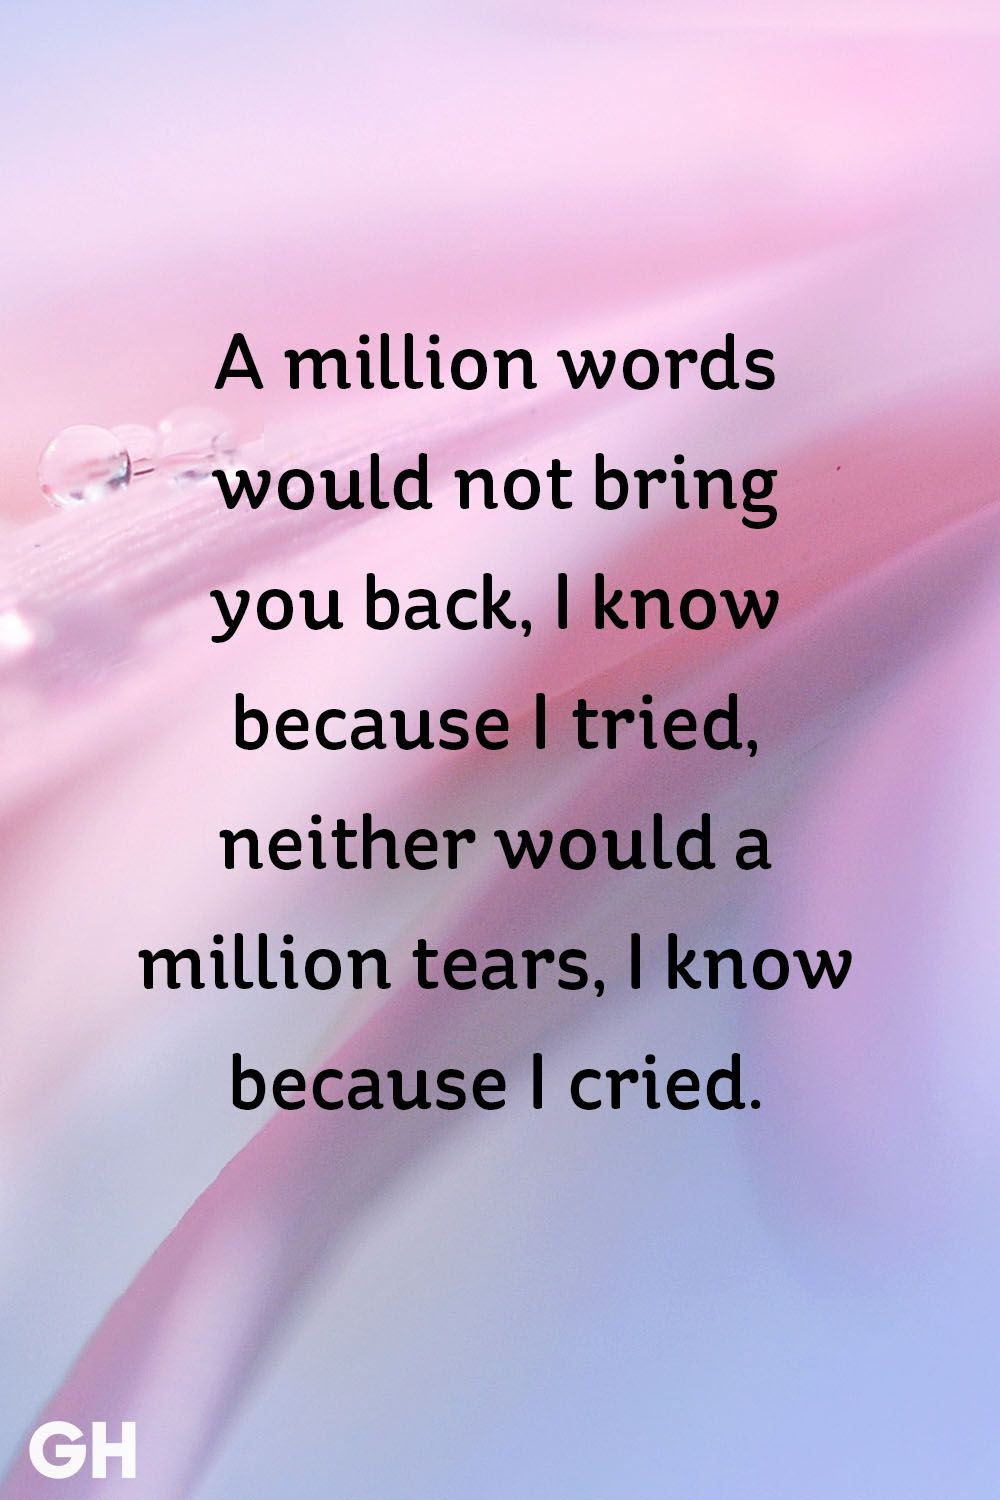 Good Morning Images Quotes Wallpapers For Whatsapp Top 100 16 Best Sad Quotes Quotes Amp Sayings About Sadness And